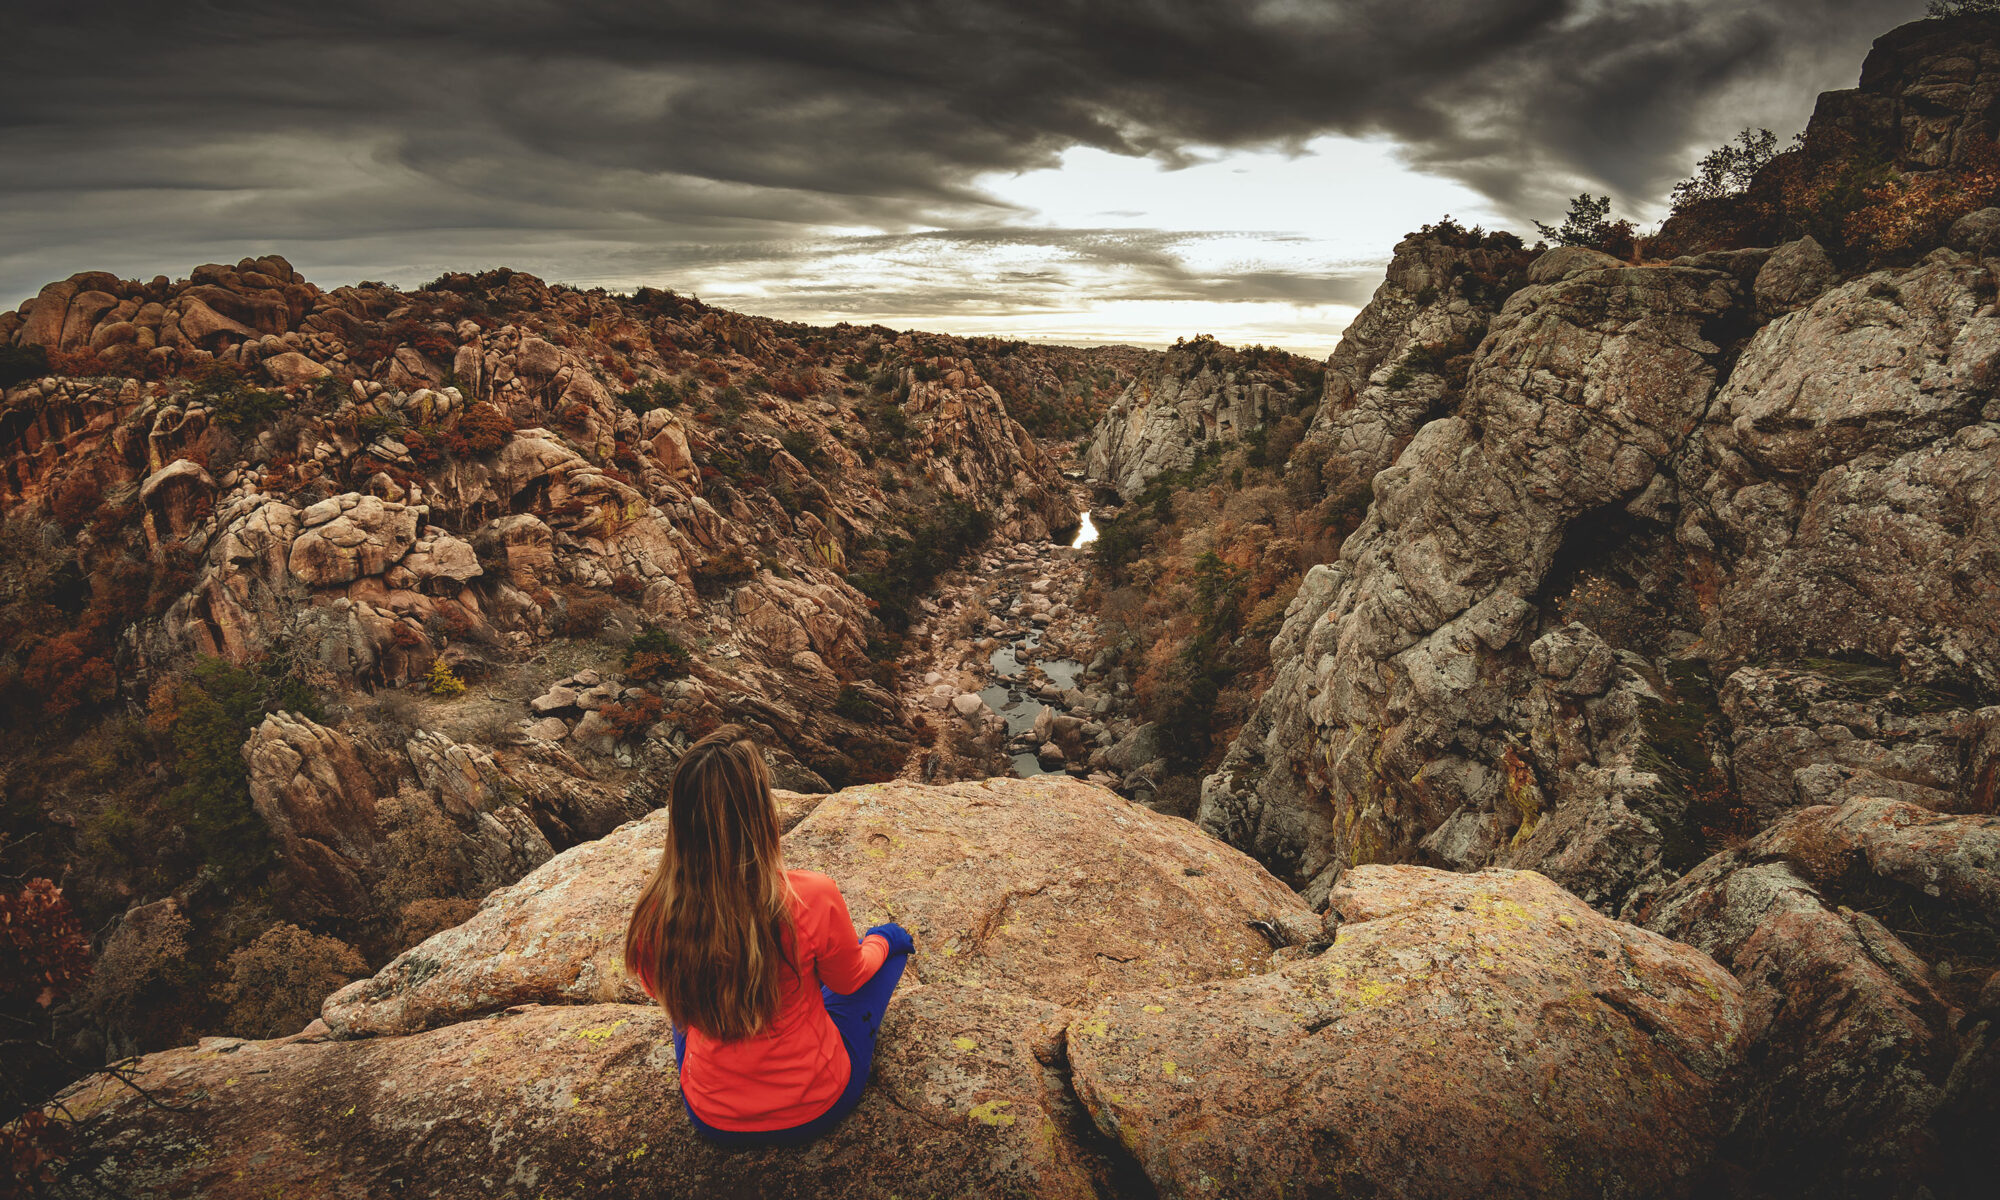 Woman hiker sitting on edge of cliff overlooking The Narrows canyon at Wichita Mountains Wildlife Refuge in Oklahoma.